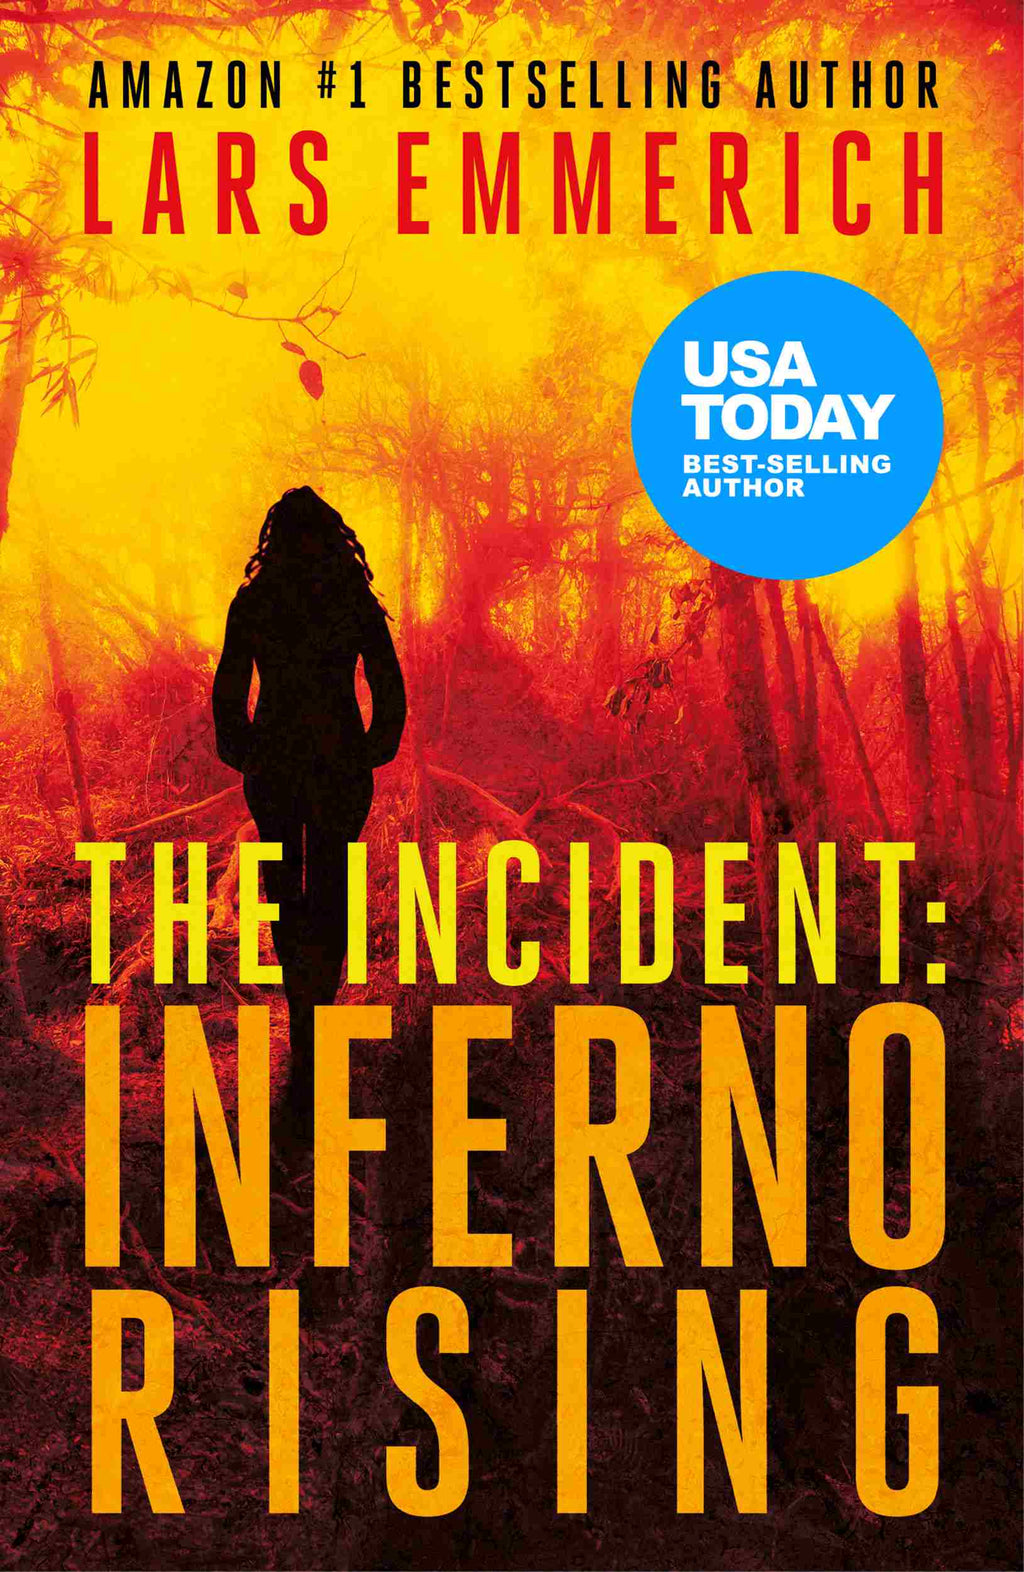 The Incident: Inferno Rising (Paperback - Large Print)